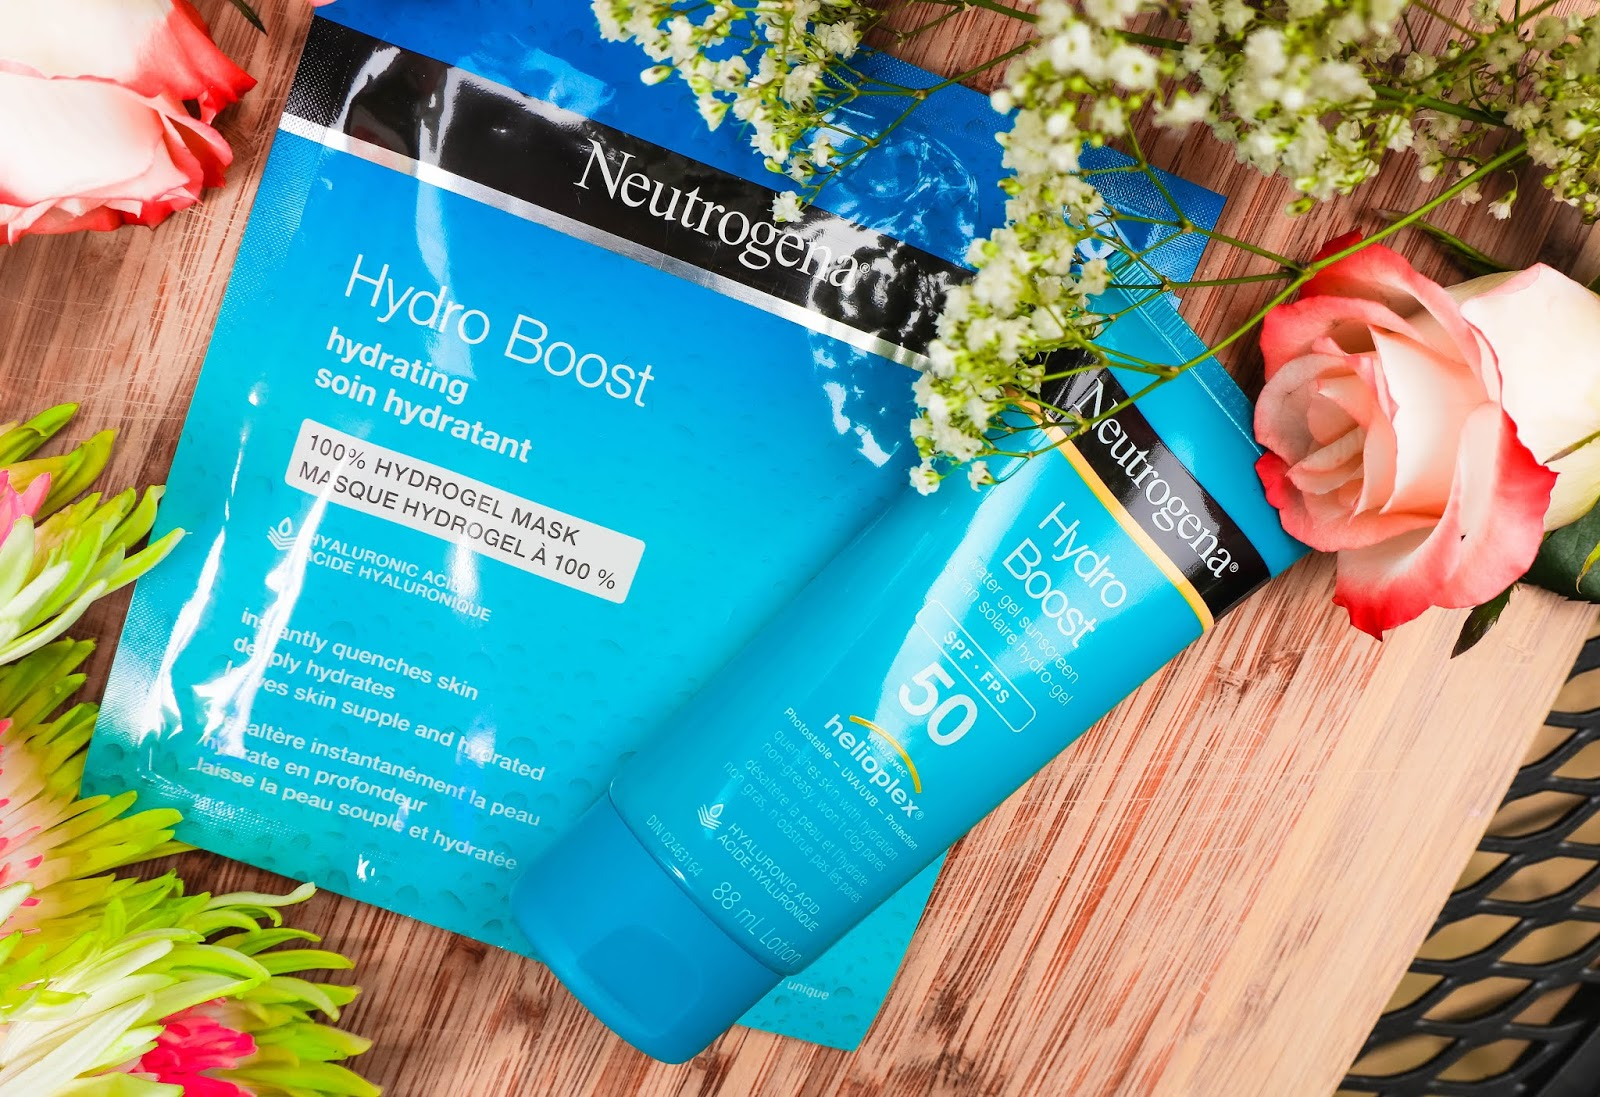 neutrogena hydro boost review mask sunscreen